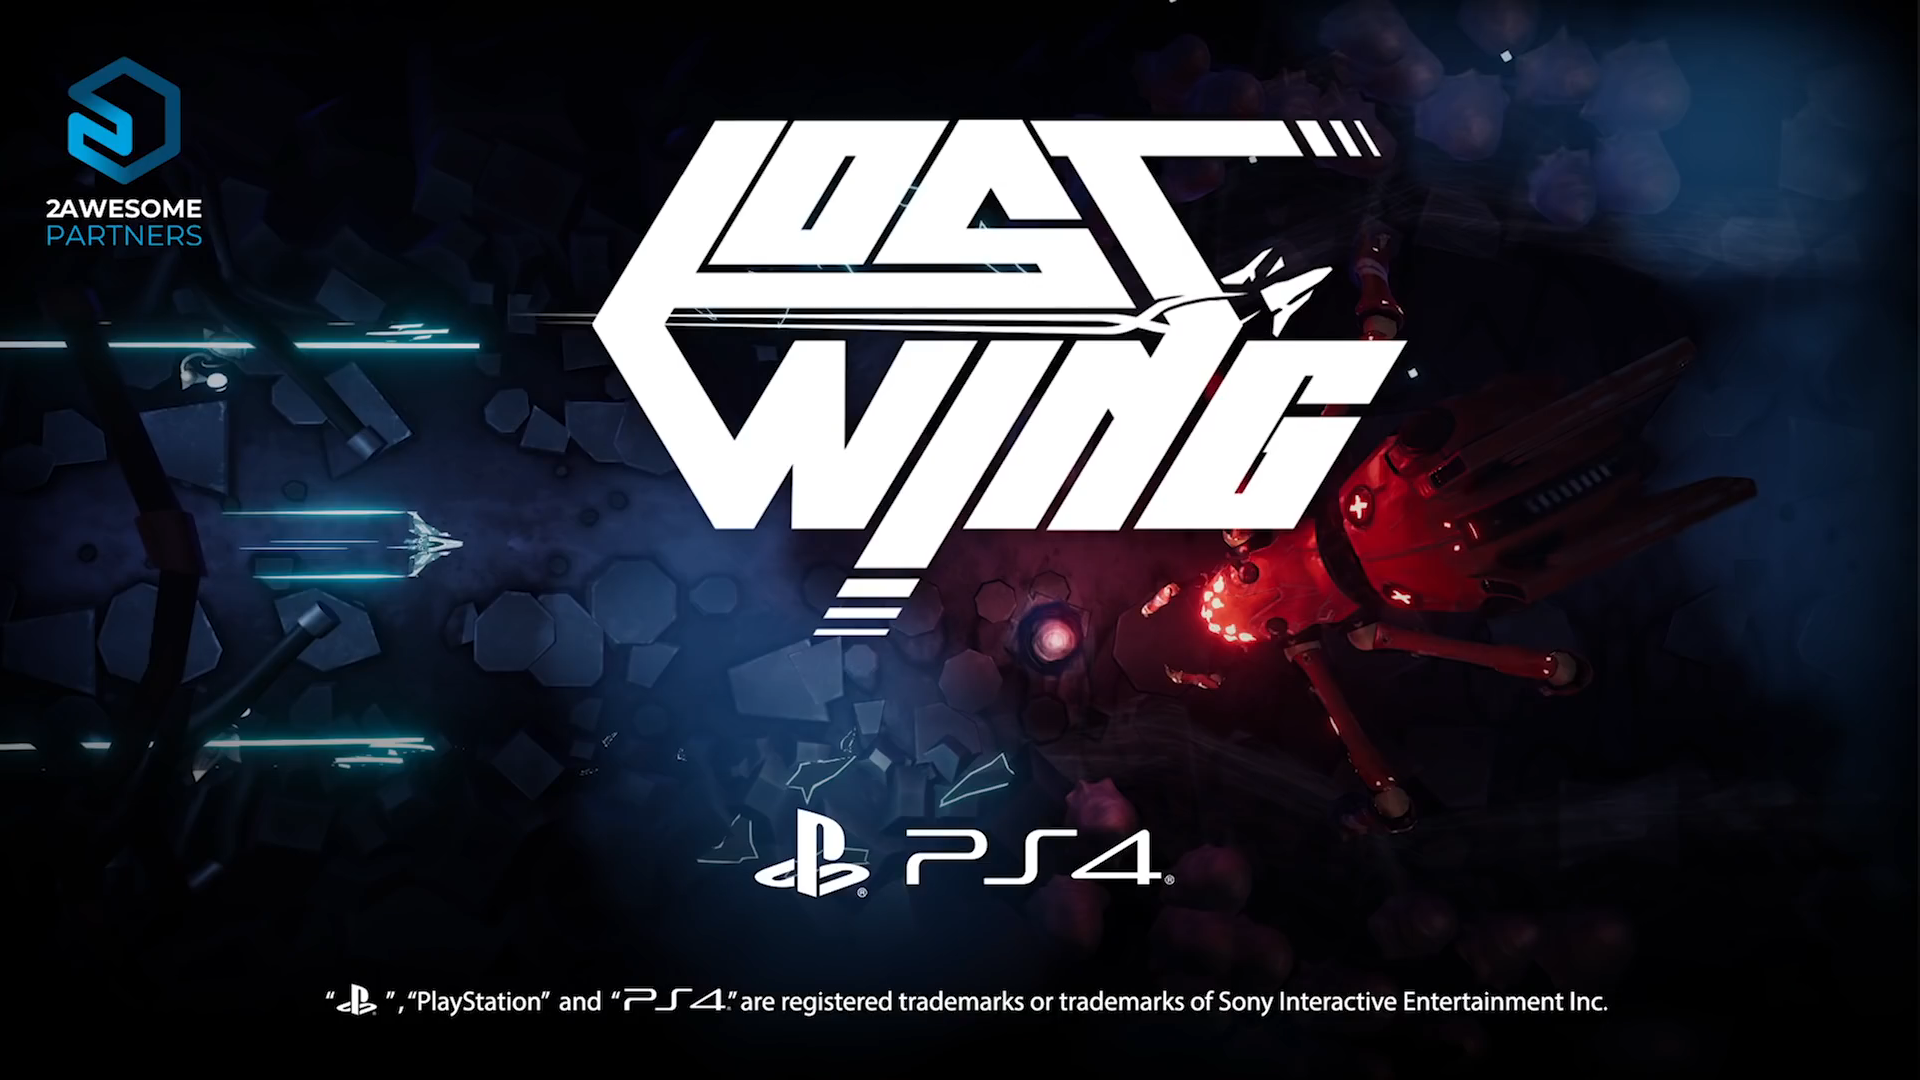 Lost Wing On Playstation 4 Xbox One Xbox Ideology